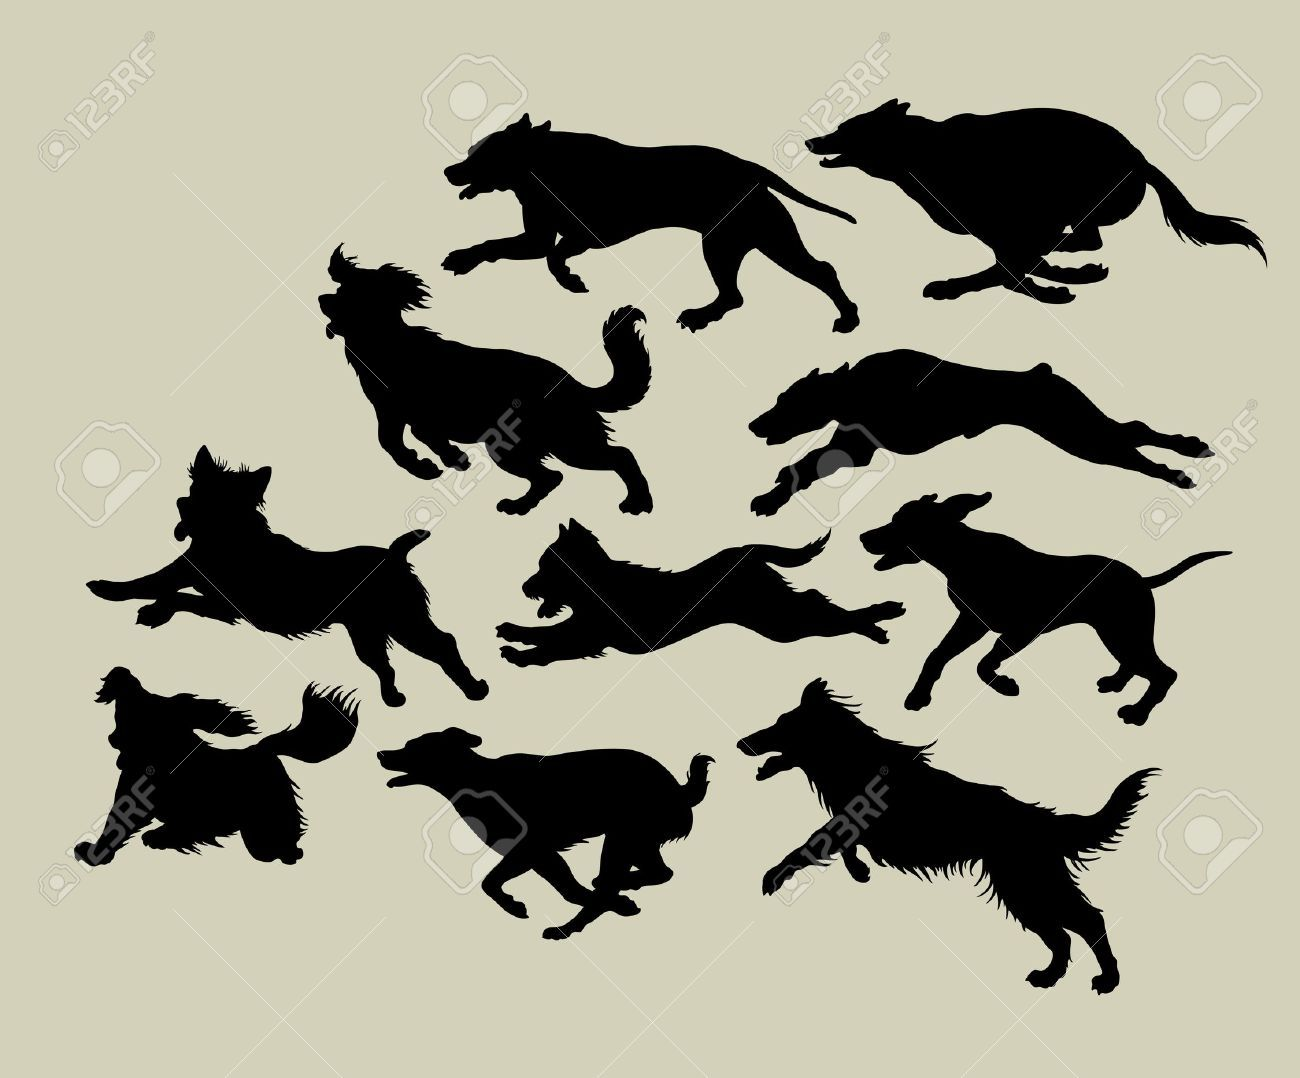 Running Dog Cliparts Stock Vector And Royalty Free Running Dog Illustrations Running Illustration Dog Illustration Running Silhouette